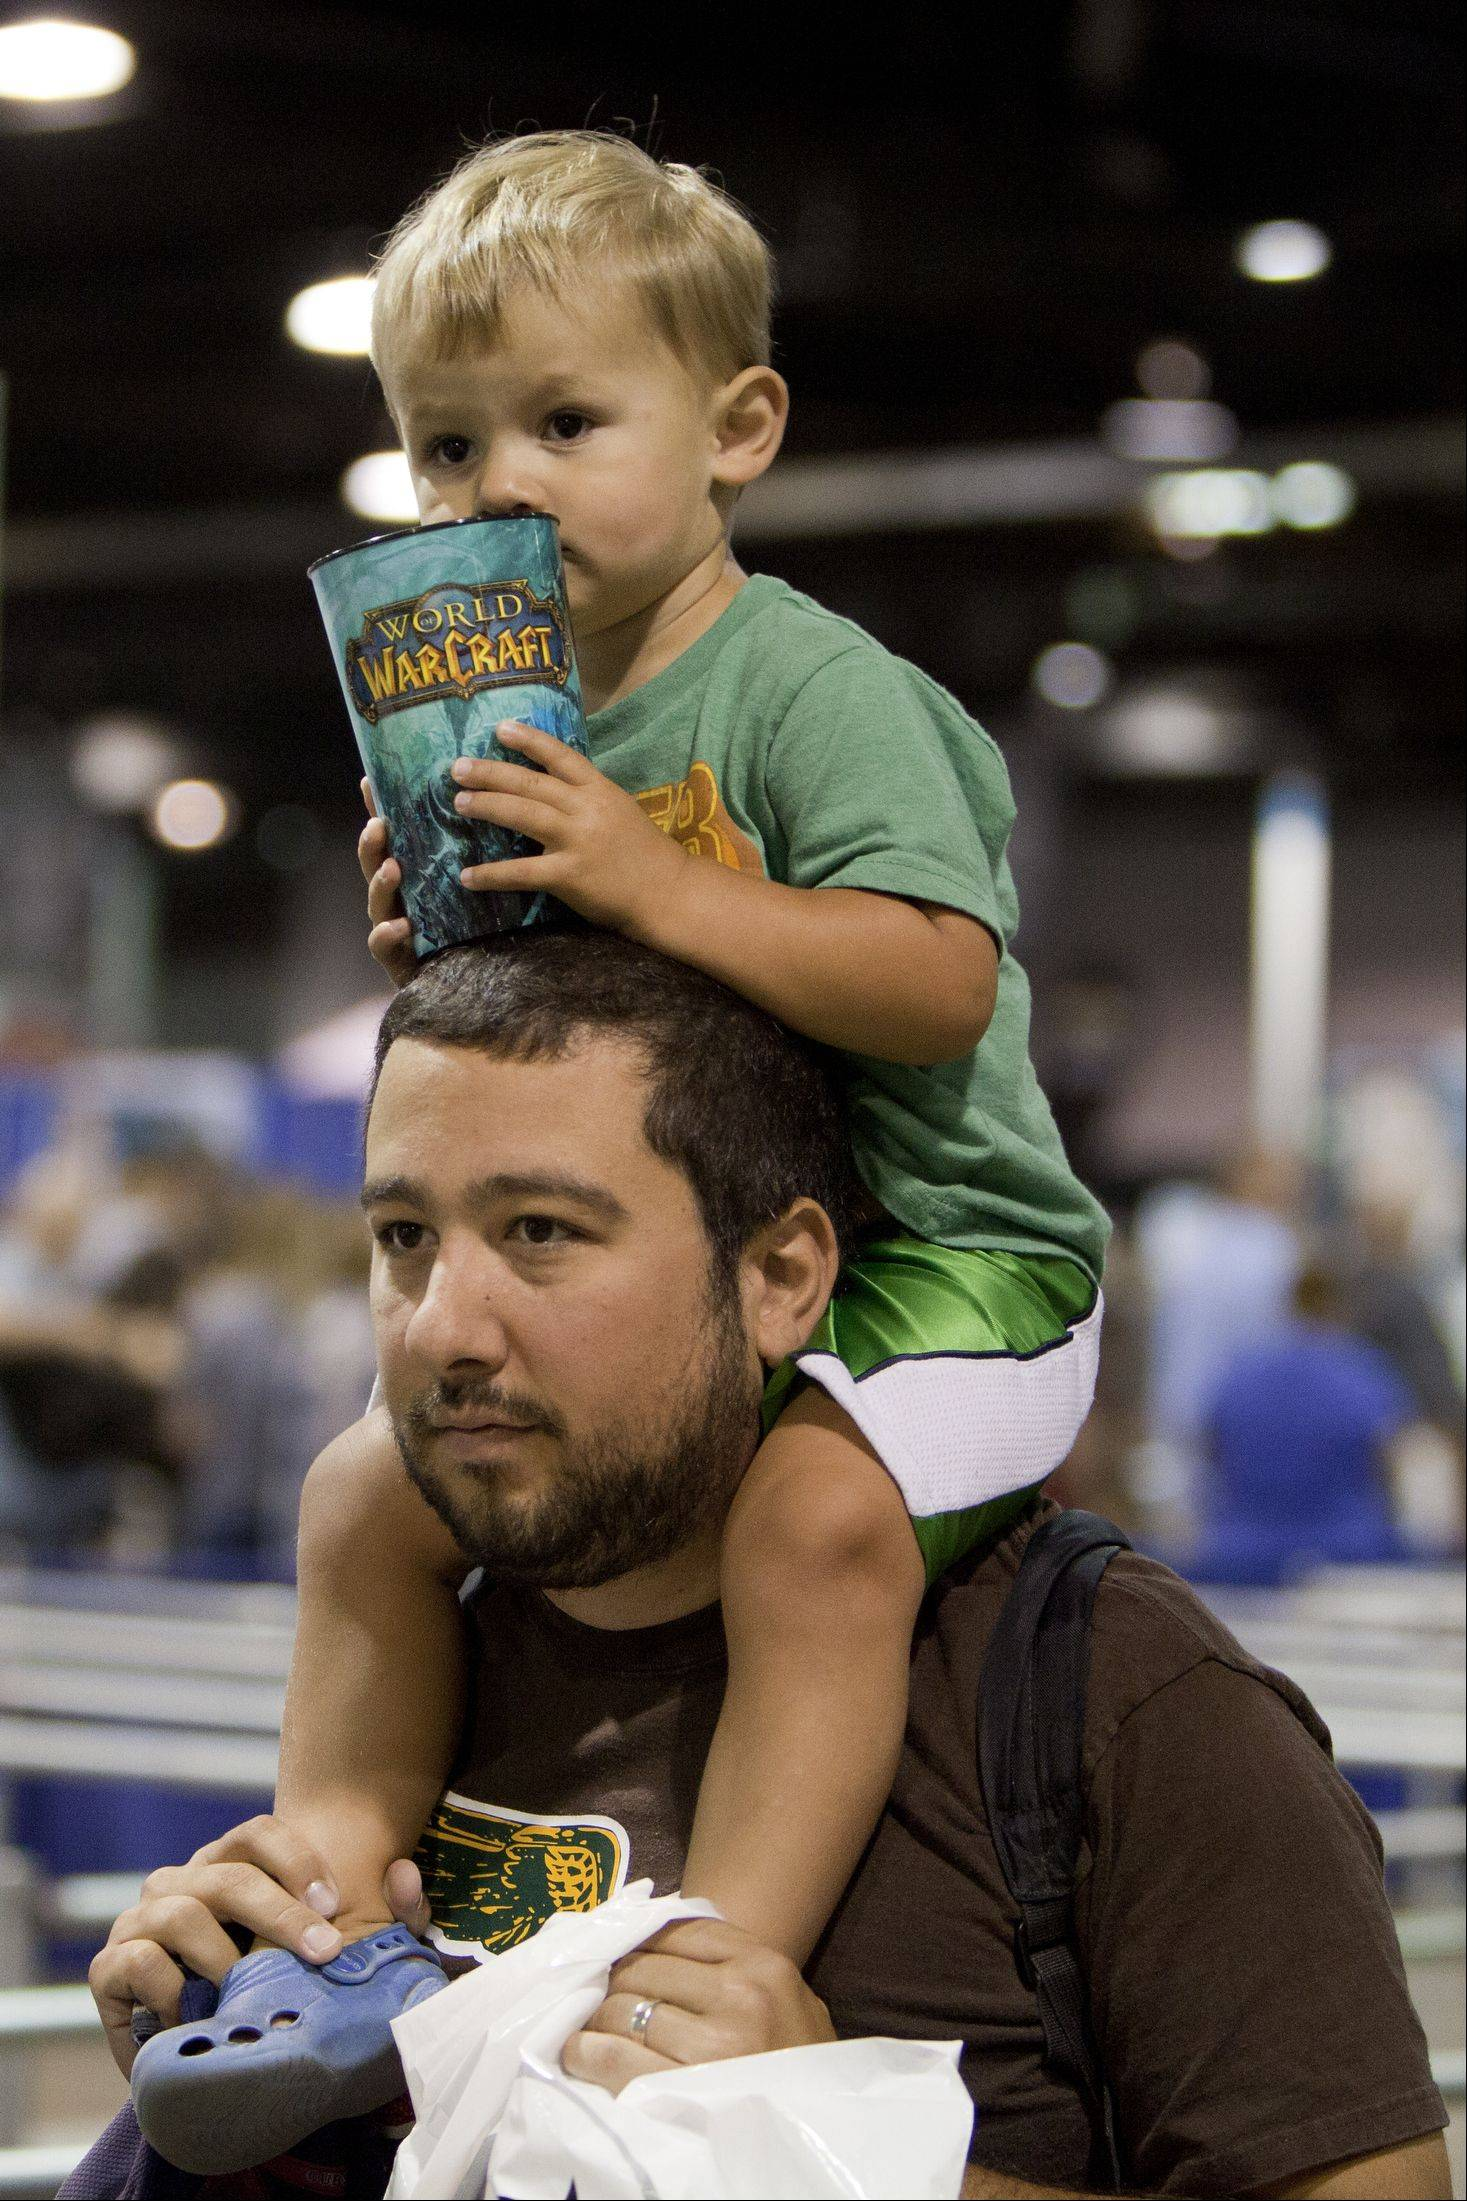 Derrick Burress of Schaumburg holds his two-year-old son Jackson as they explore the annual Wizard World Chicago Comic Con at the Donald E. Stephens Convention Center in Rosemont.